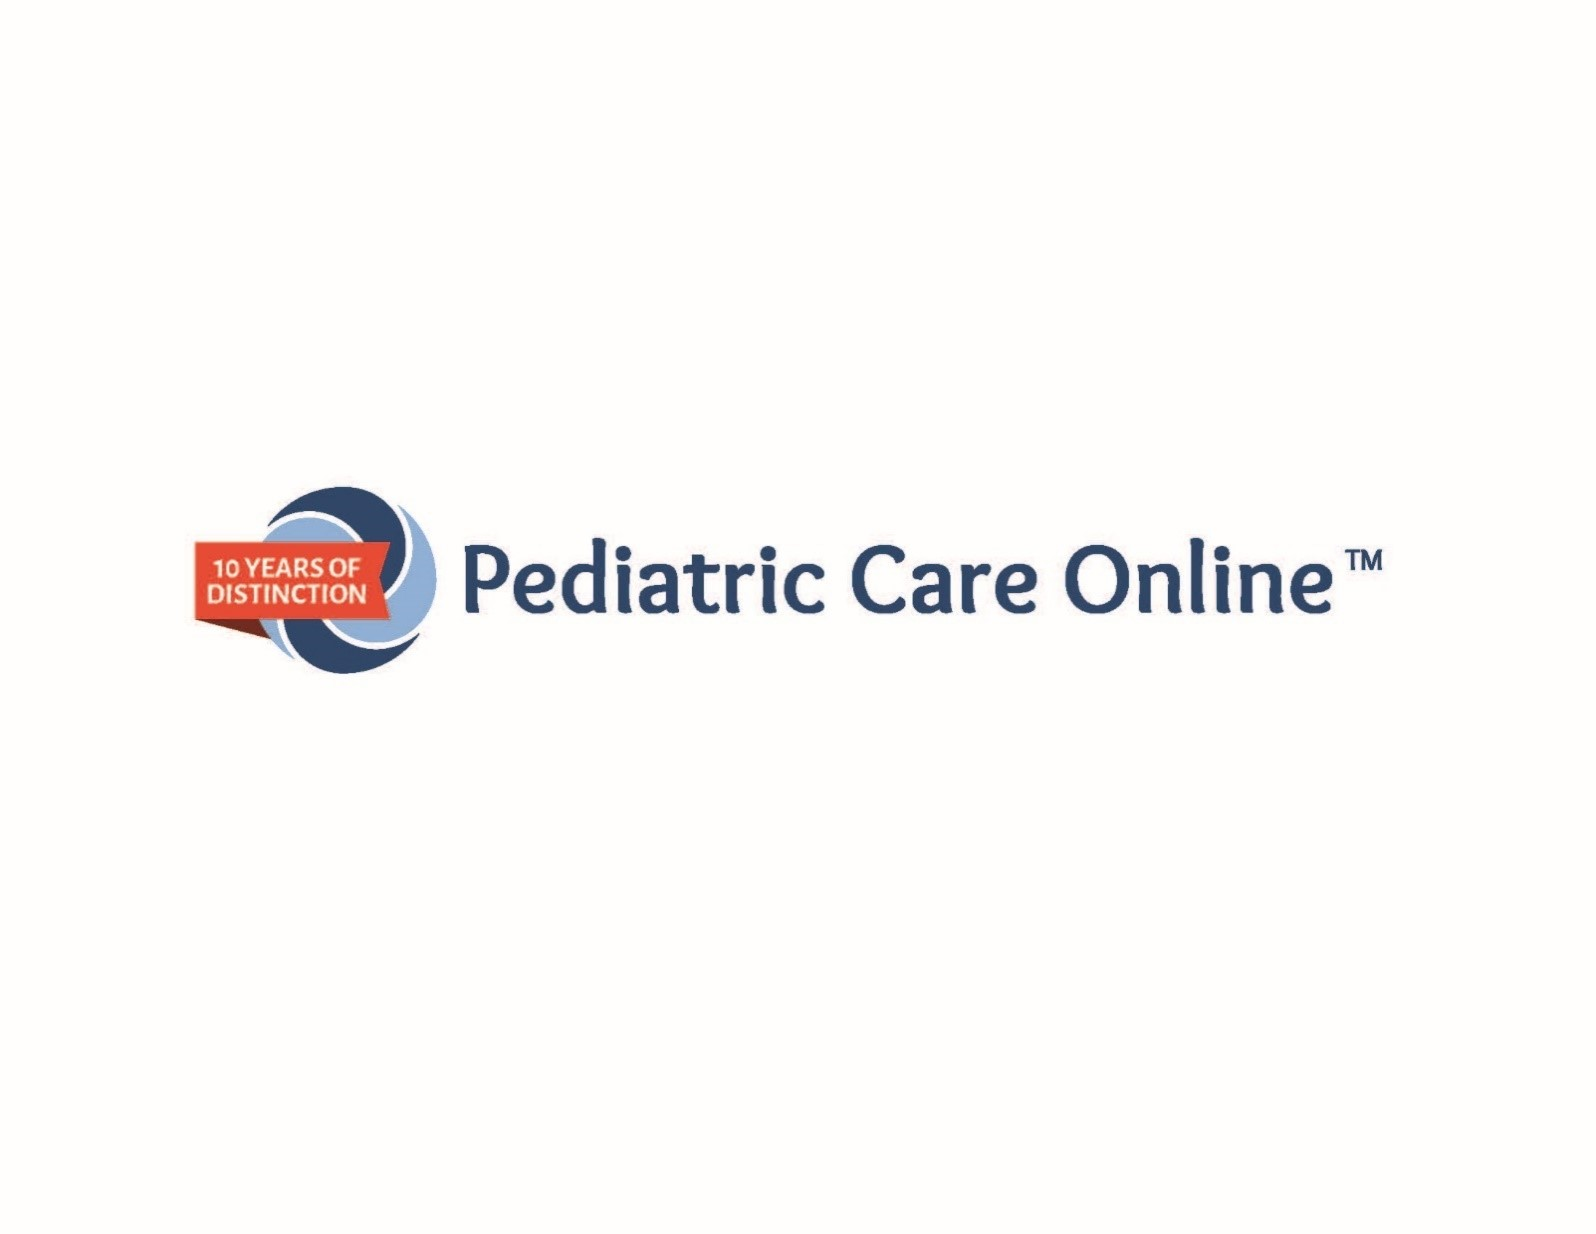 Pediatric Care Online Celebrates 10 Years  – The Future Looks Bright